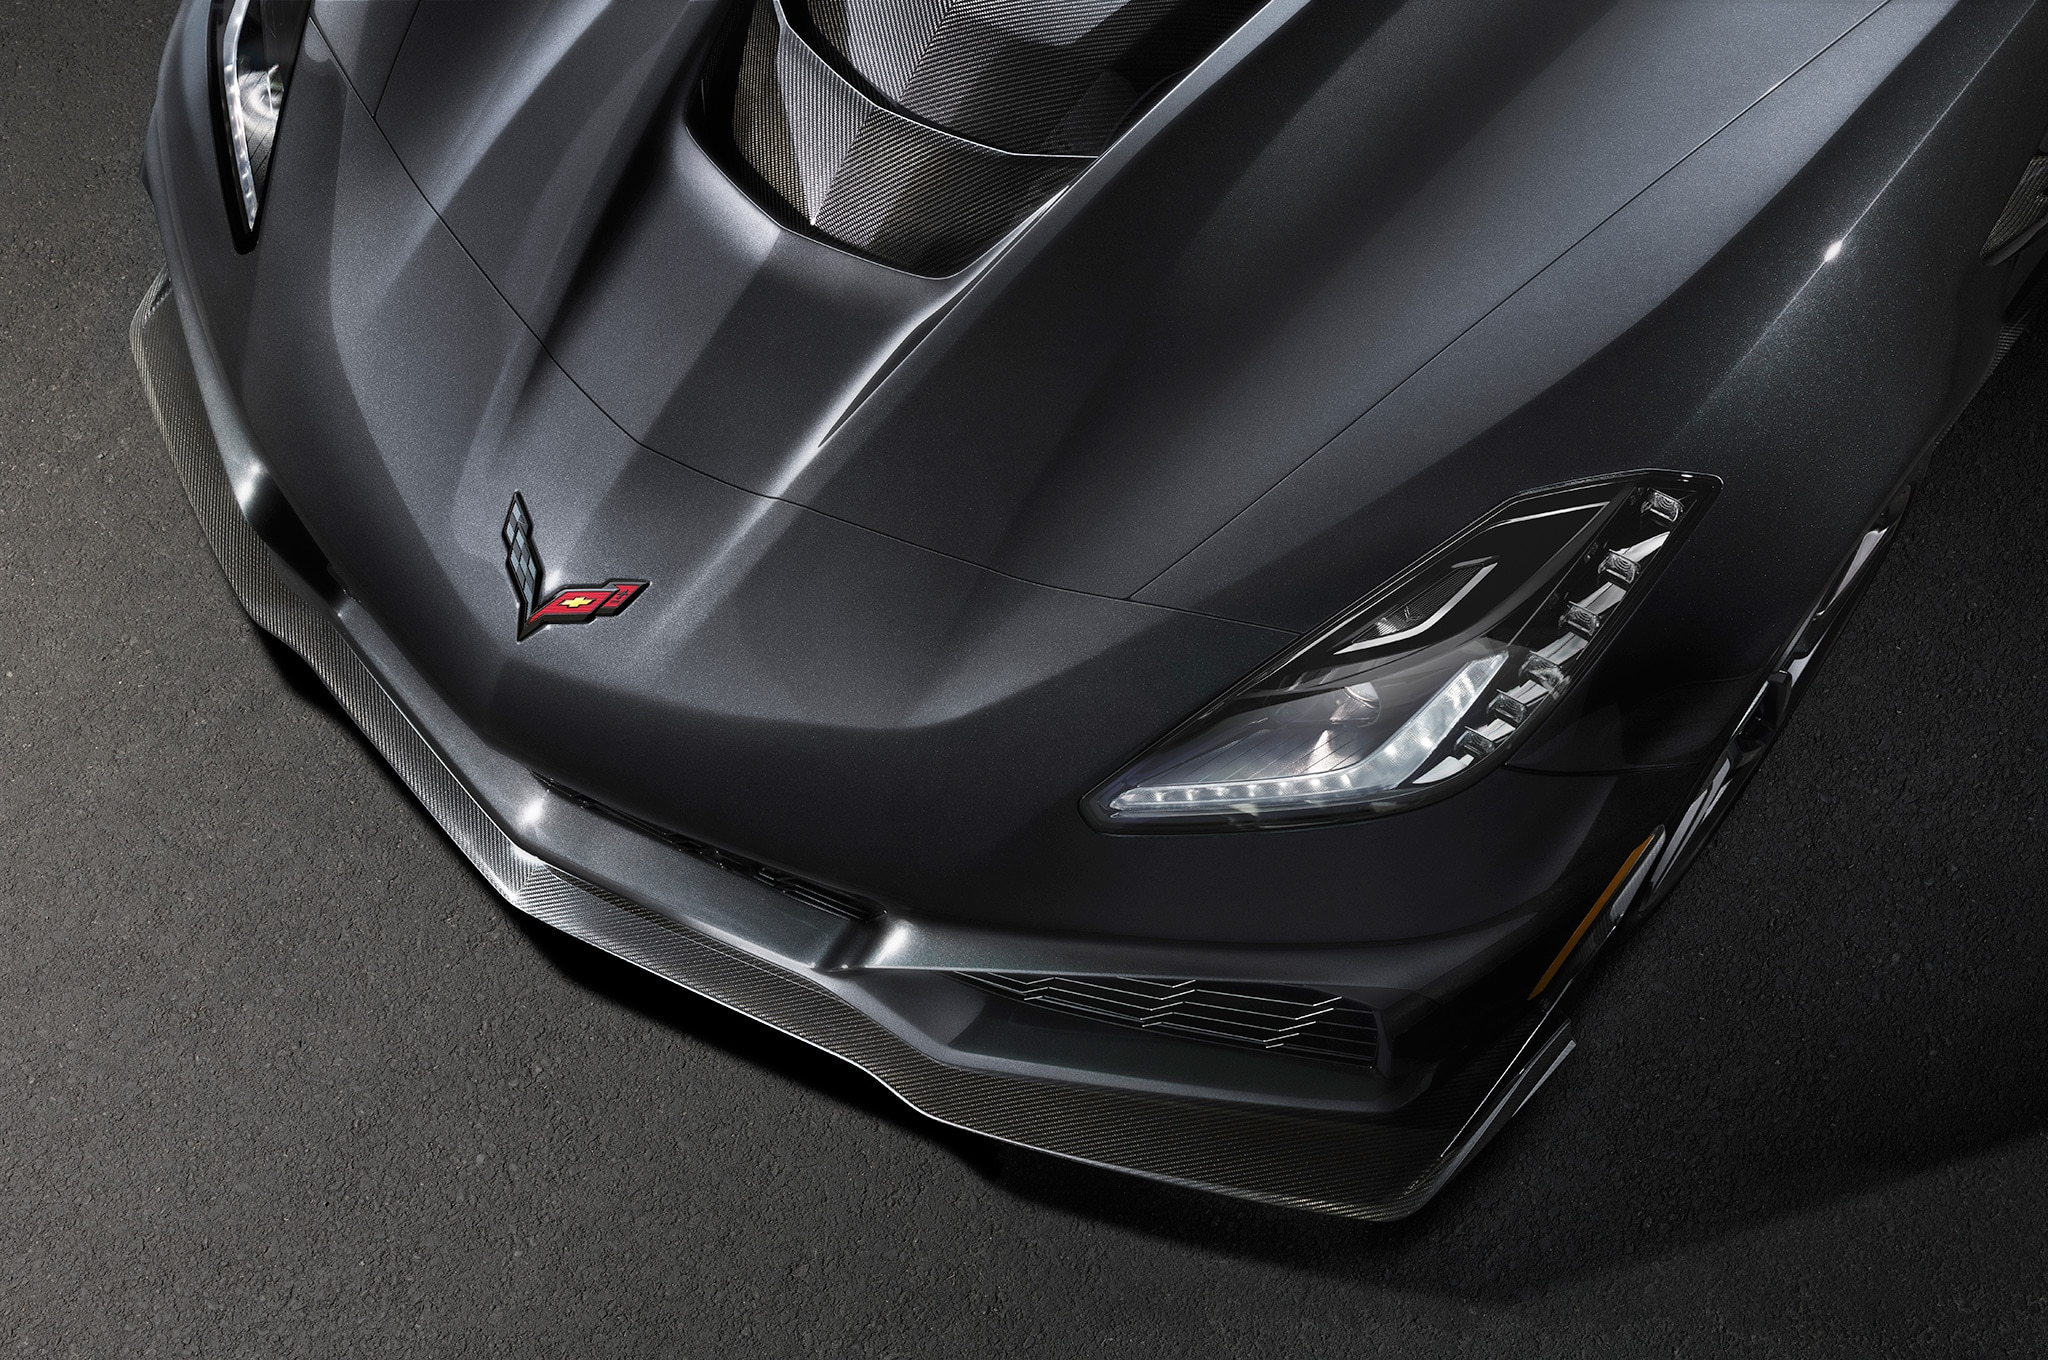 755-Horsepower 2019 Chevy Corvette ZR1 is the Fastest, Most Powerful Vette Ever